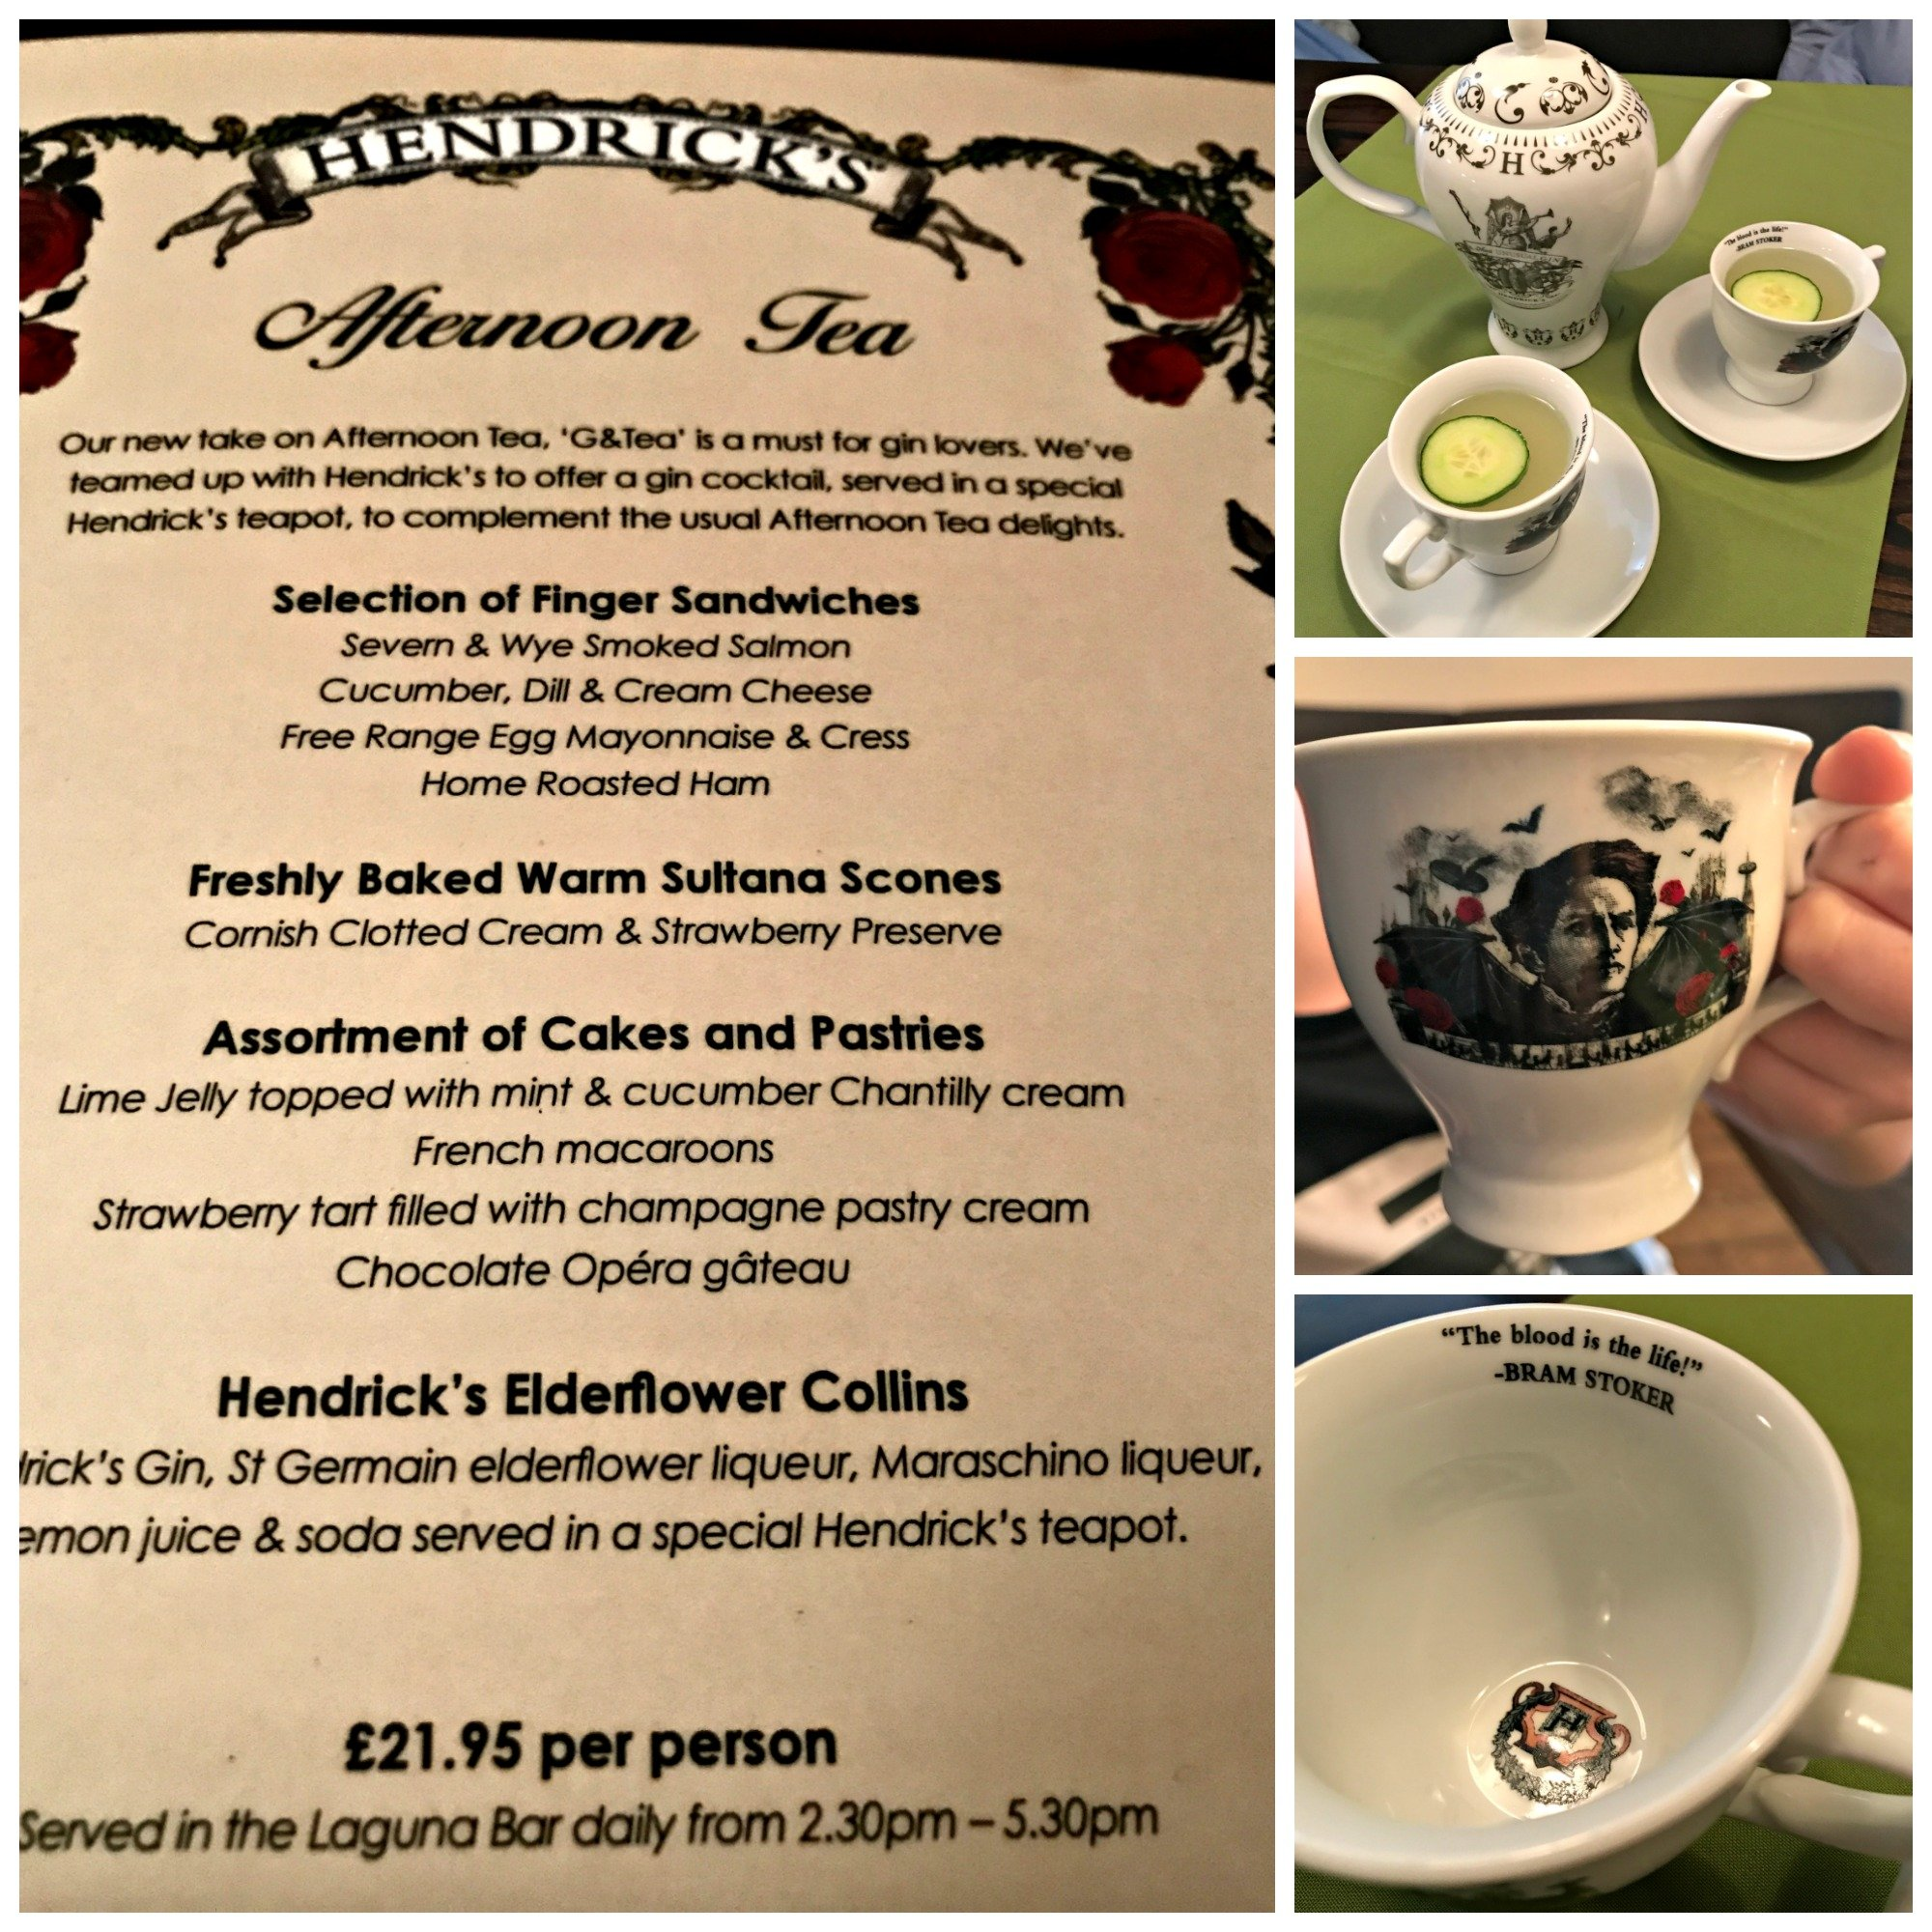 Hendrick's Gin Afternoon Tea - pot, cups and saucers